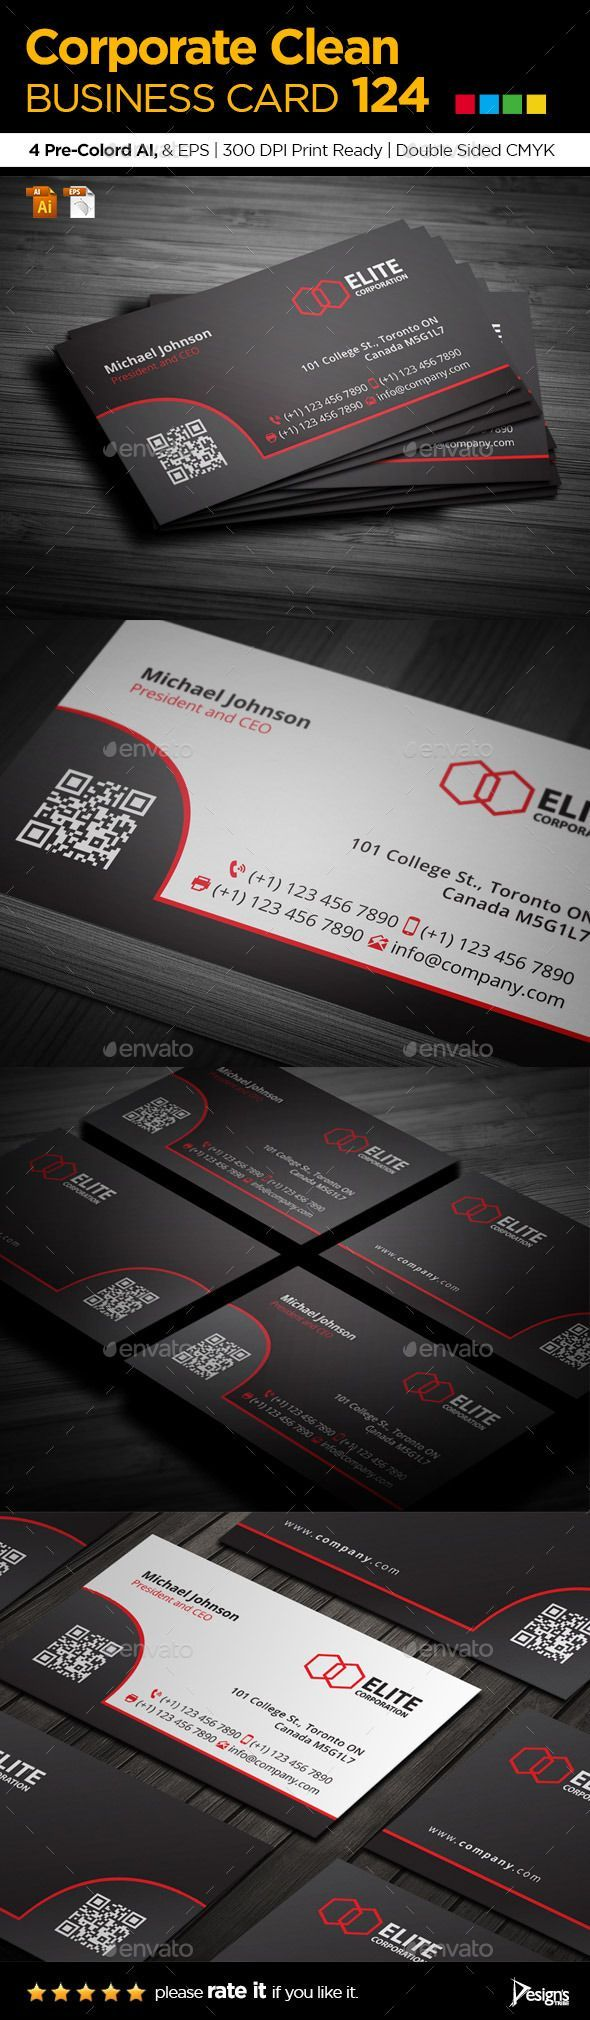 Simple and Clean Business Card 124 — Vector EPS #qr code #stylish • Available here → https://graphicriver.net/item/simple-and-clean-business-card-124/9161591?ref=pxcr